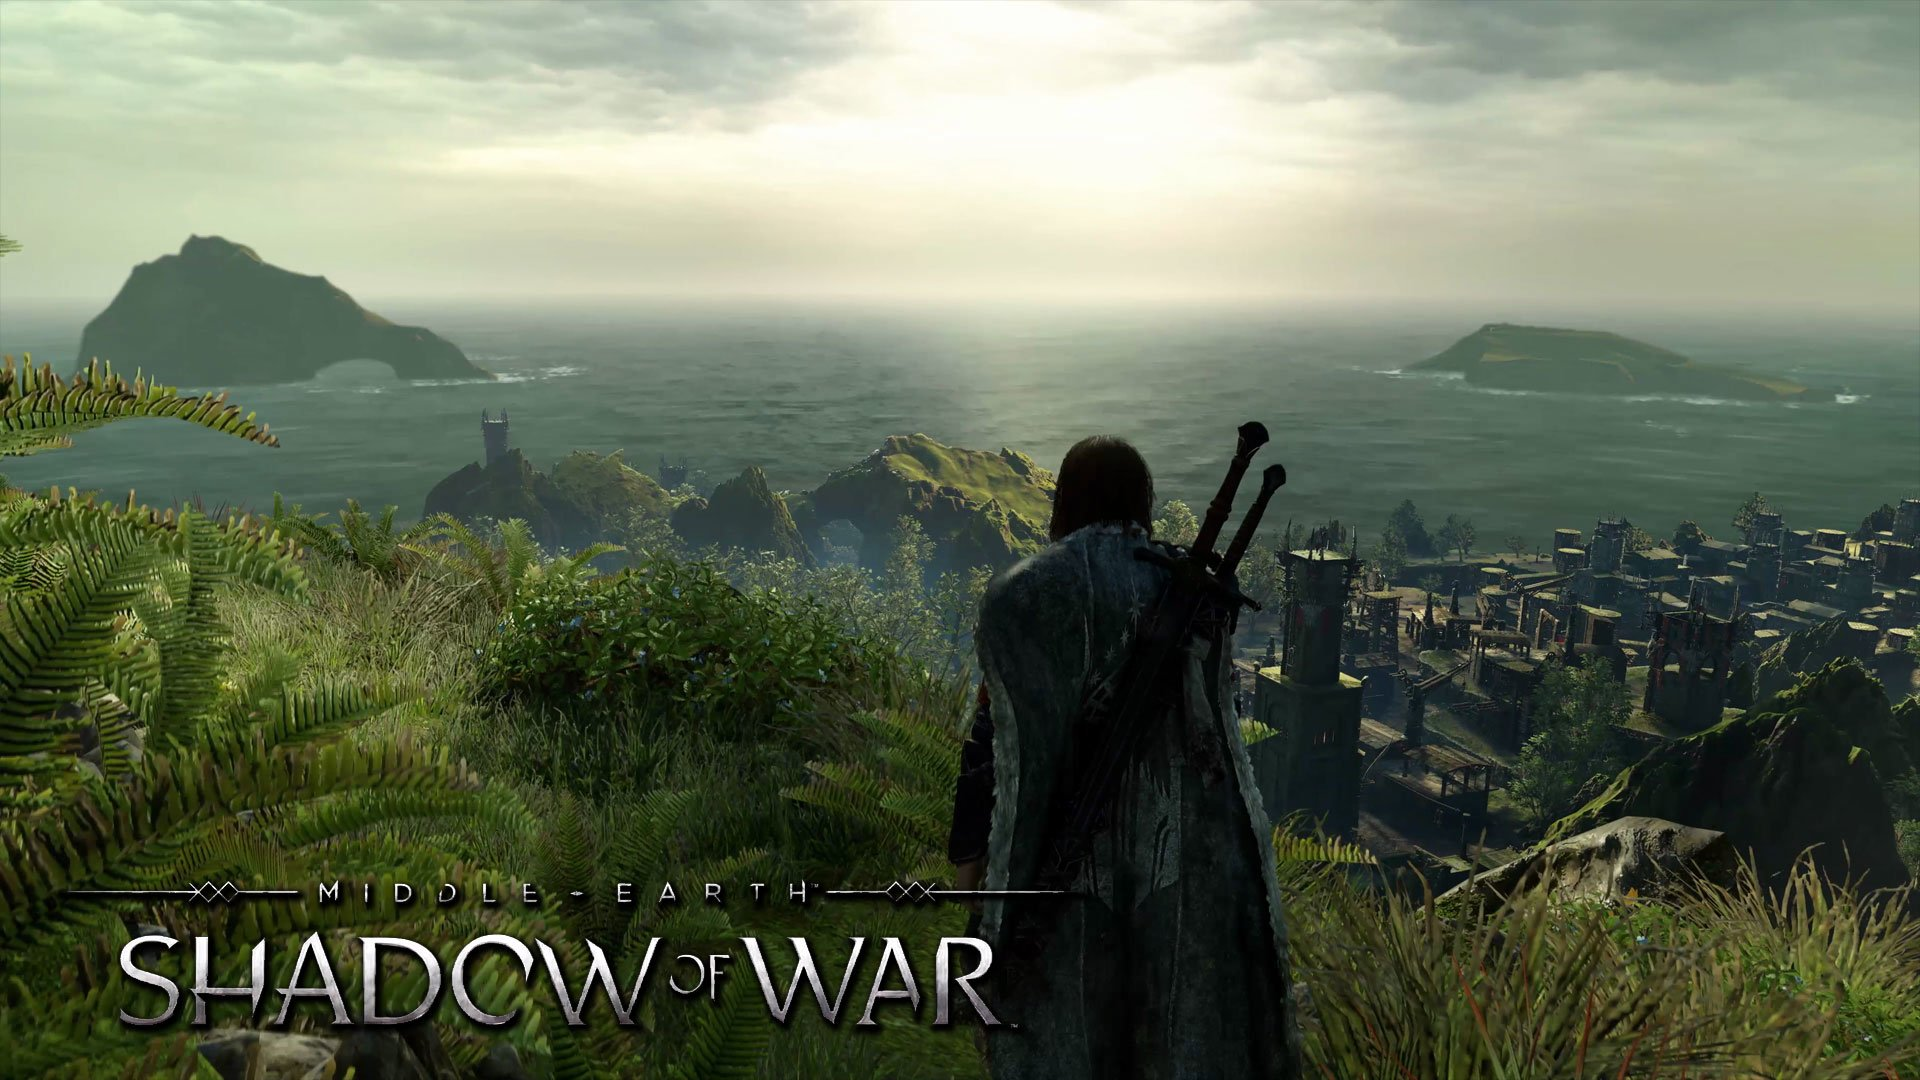 Middle Earth Shadow Of War Wallpaper: Save Middle Earth Shadow Of War Wallpapers